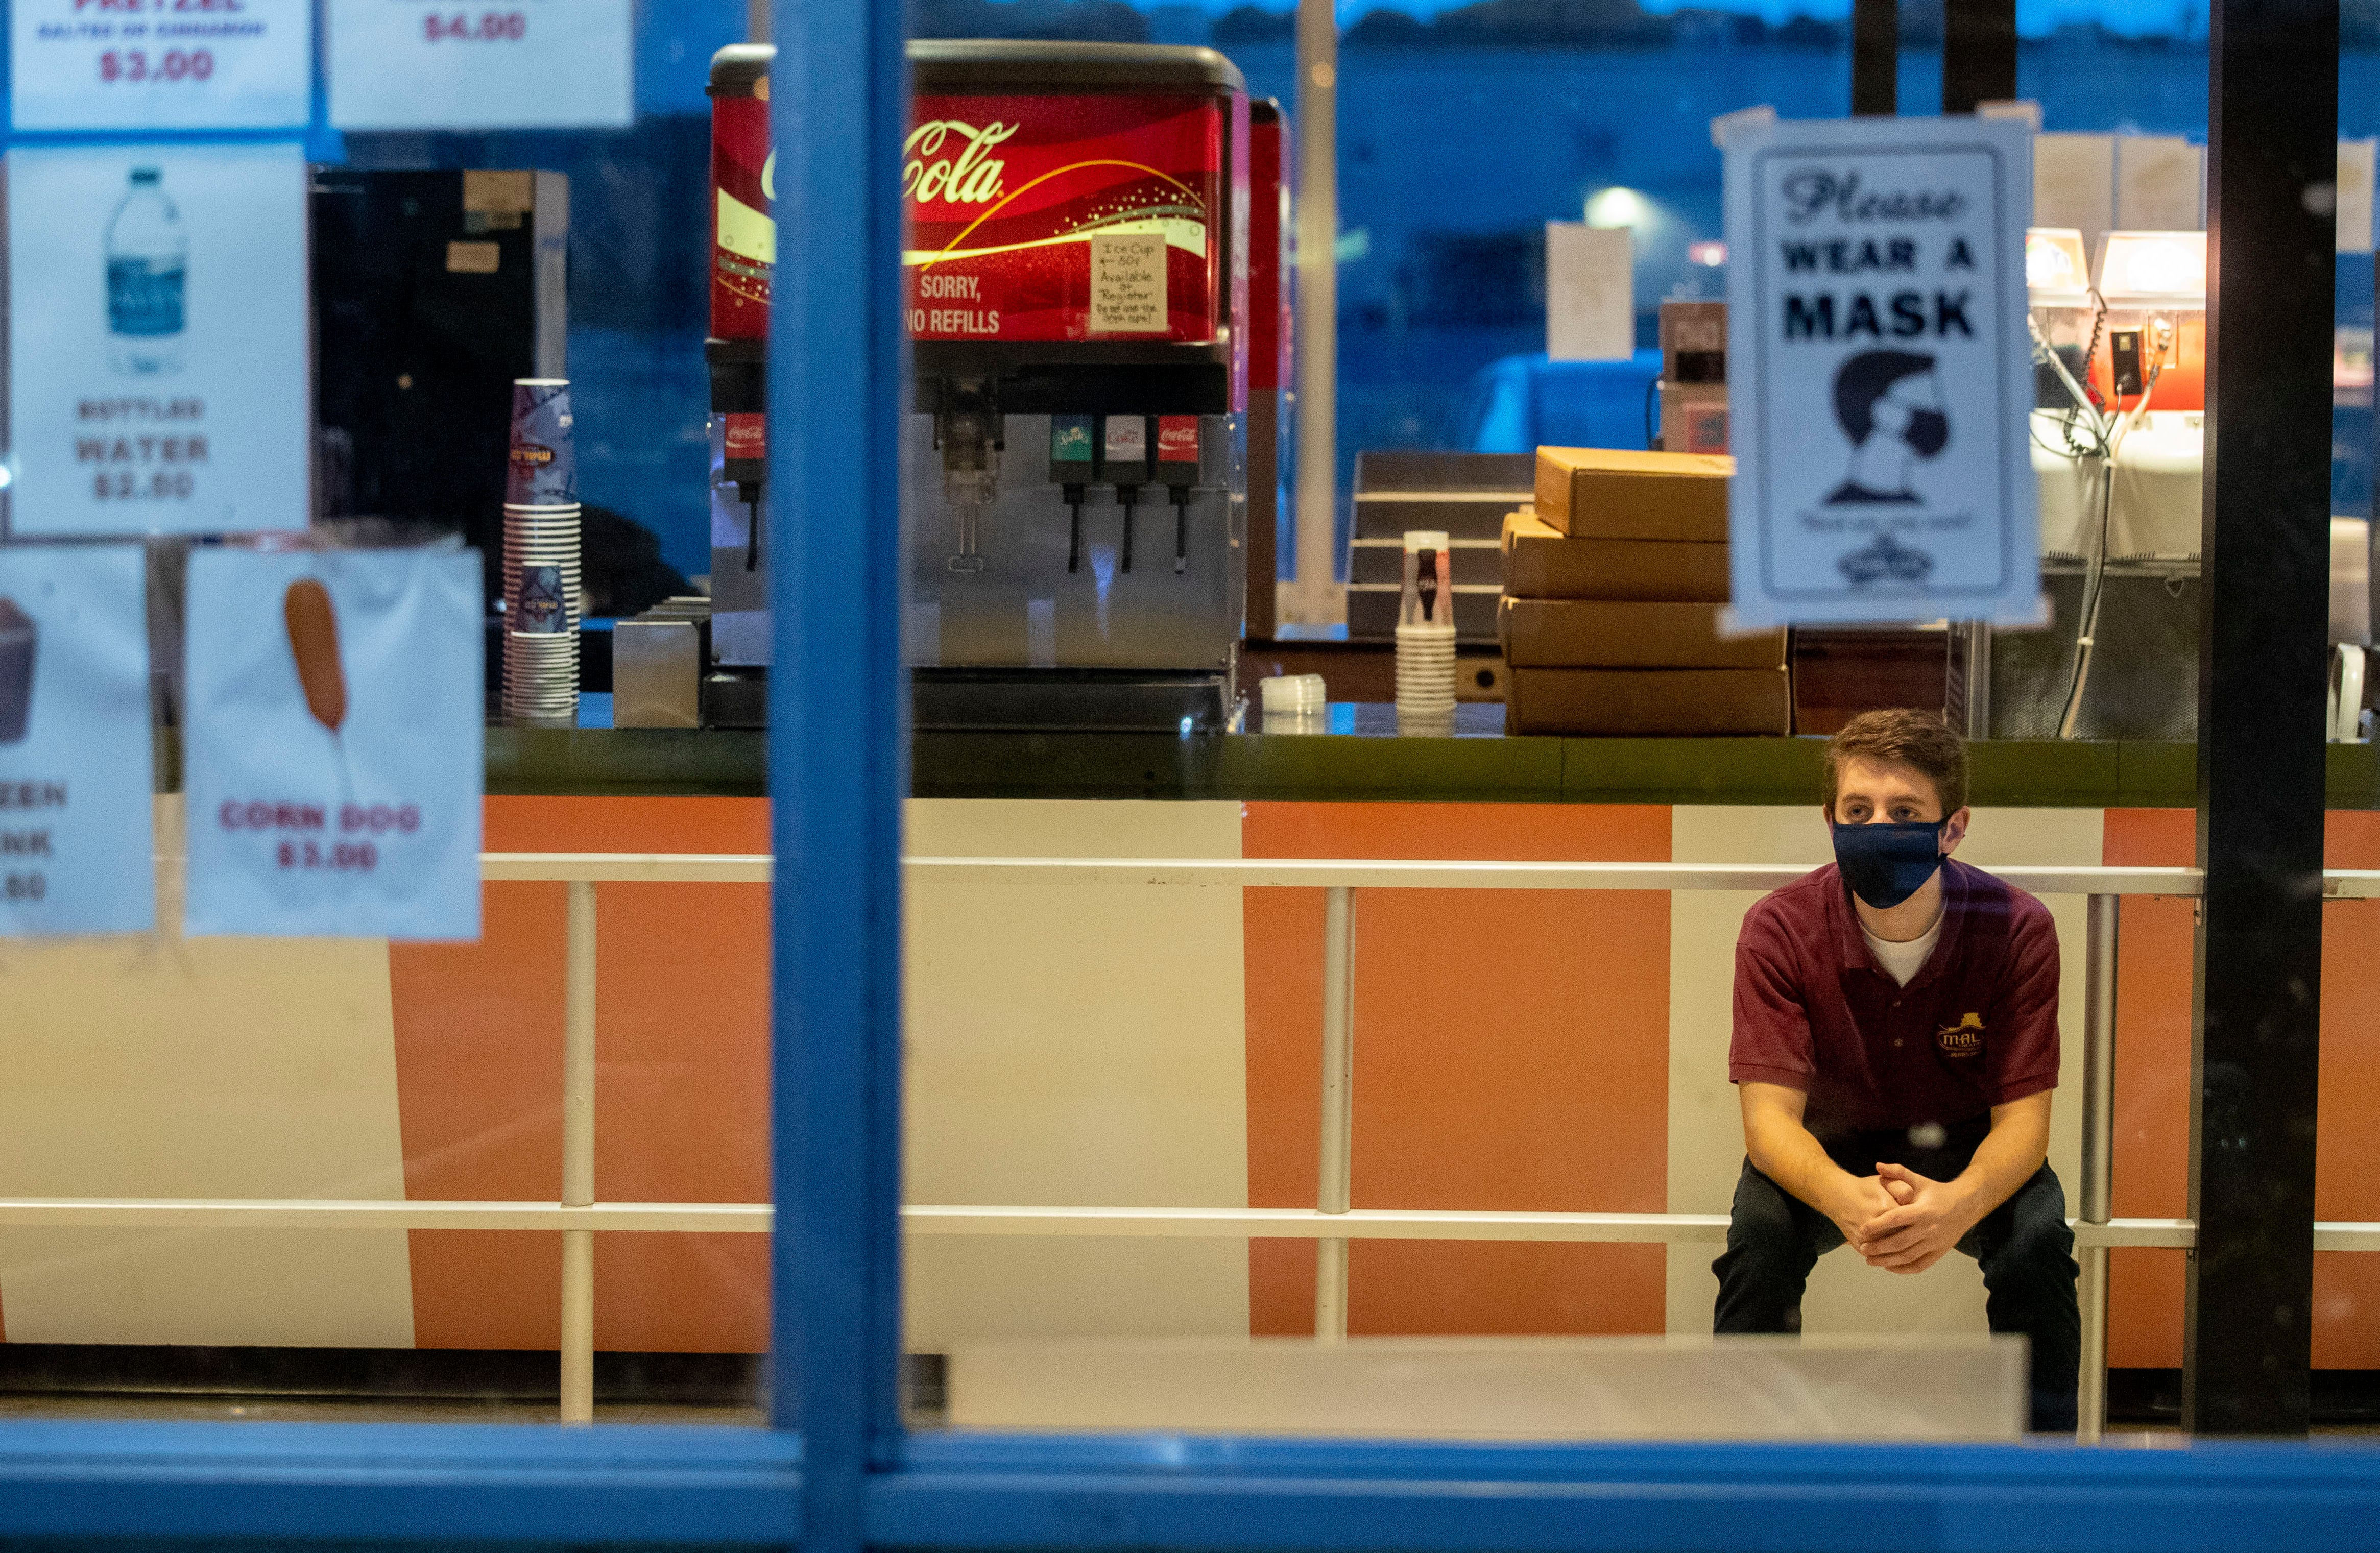 Jacob Roberts, 19, of Memphis, waits in the concessions building for customers Tuesday, Sept. 1, 2020, at Malco Summer Quartet Drive-In in Memphis. Roberts worked at the Malco Forest Hill location and was transferred to the drive-in during the pandemic.